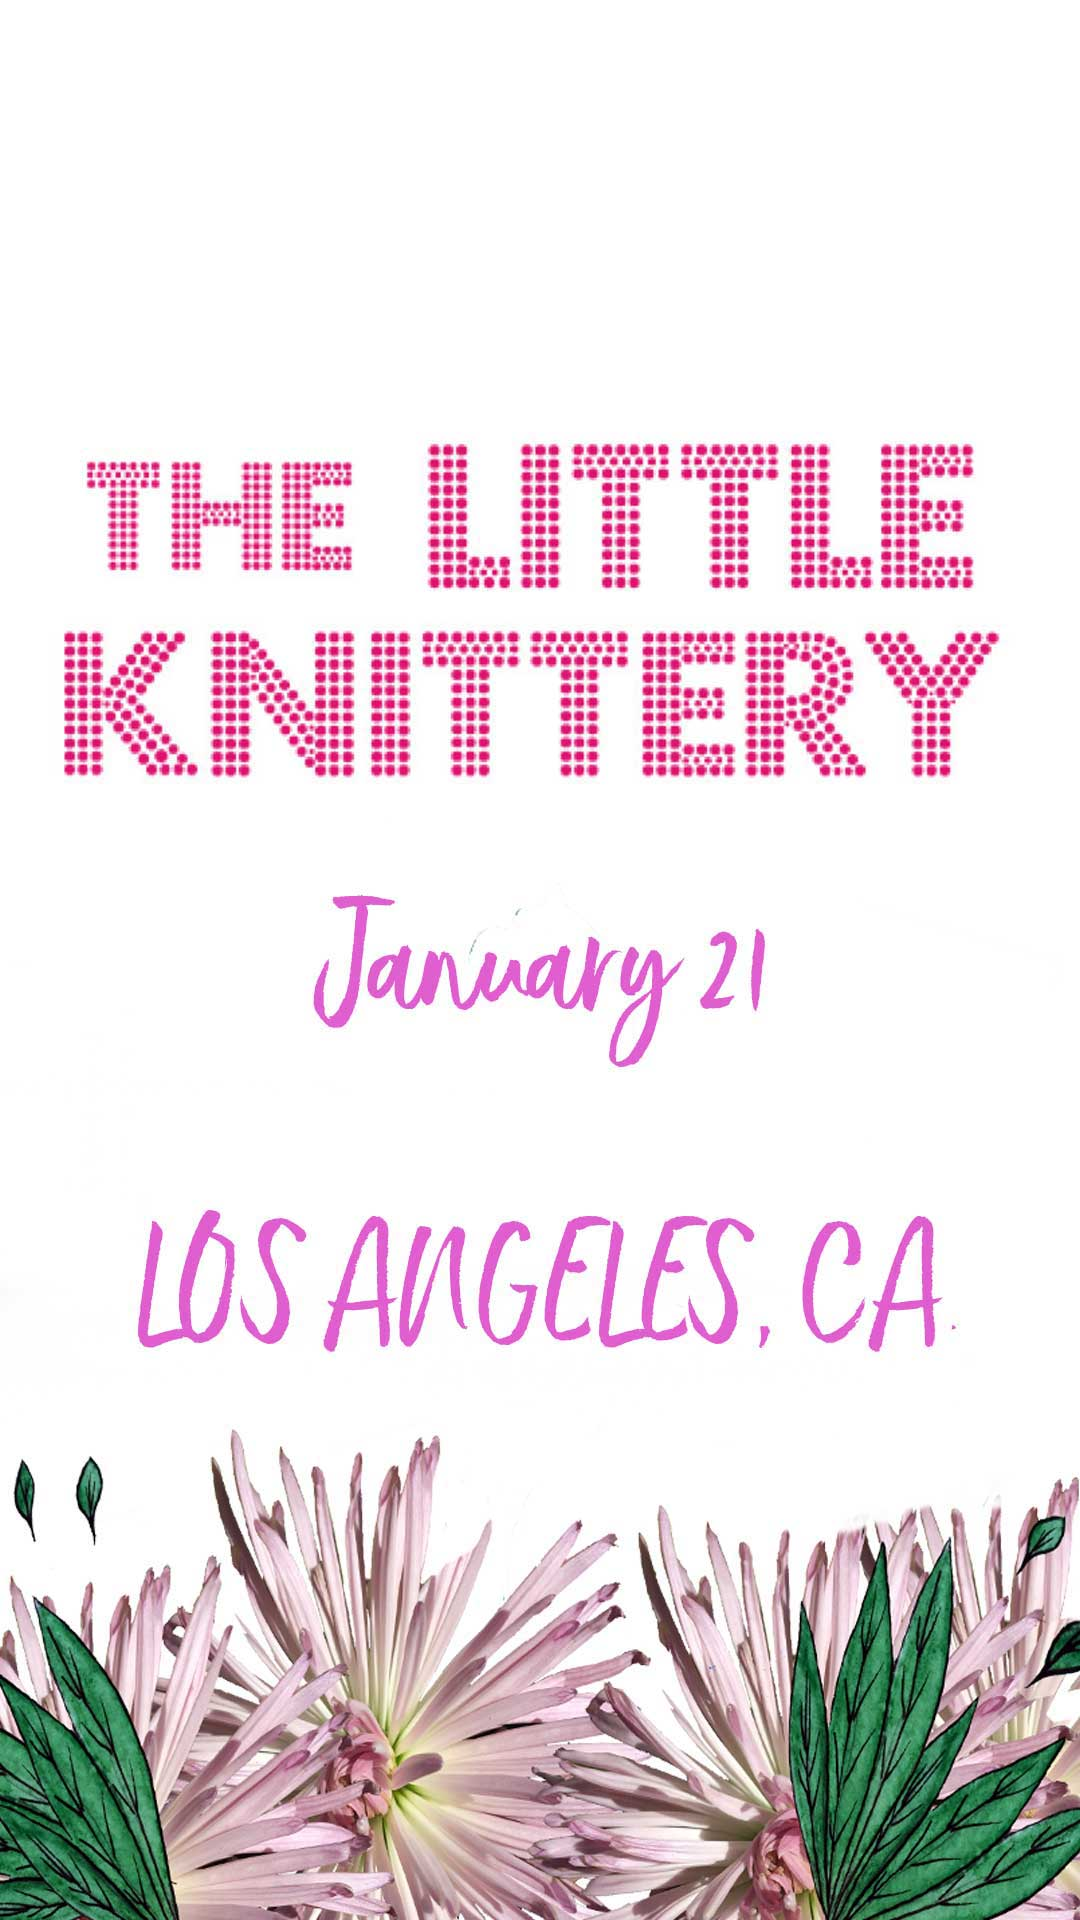 The Little Knittery LA